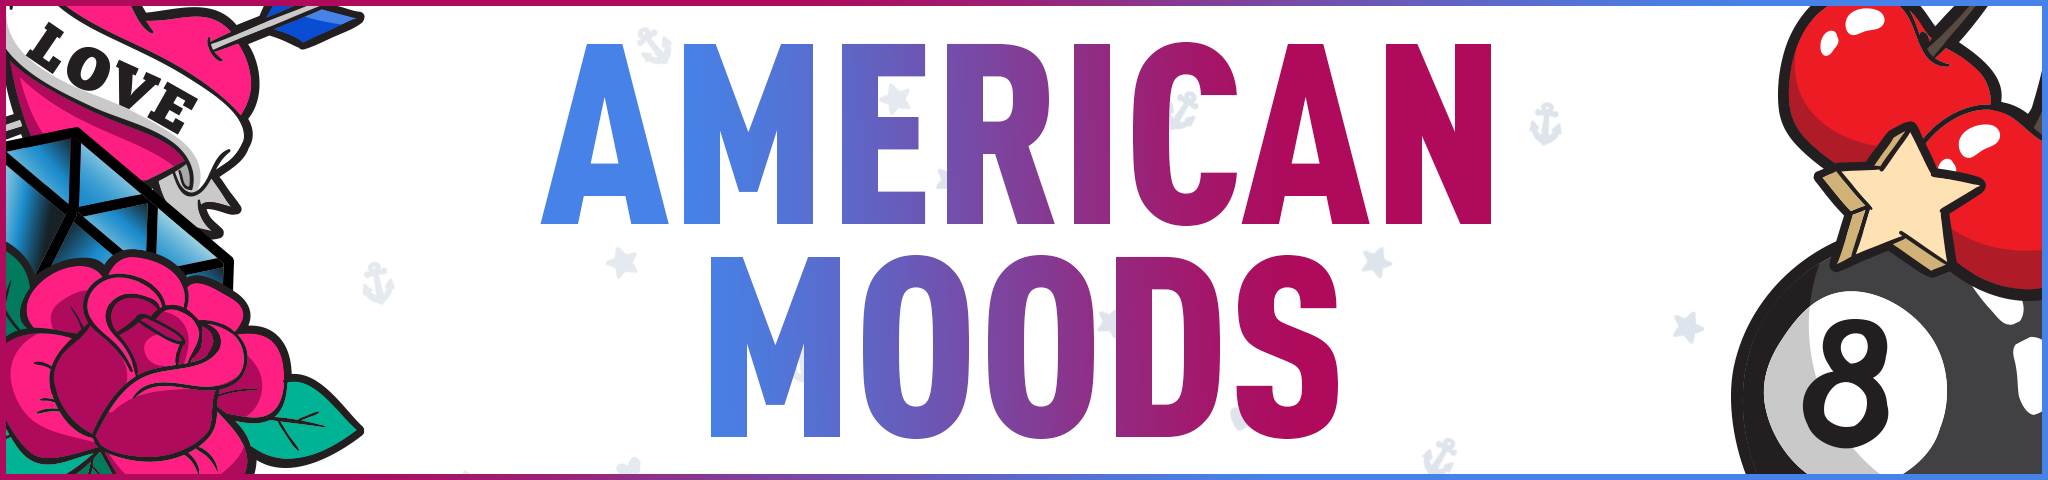 American Mood - Doodle Watches for Women